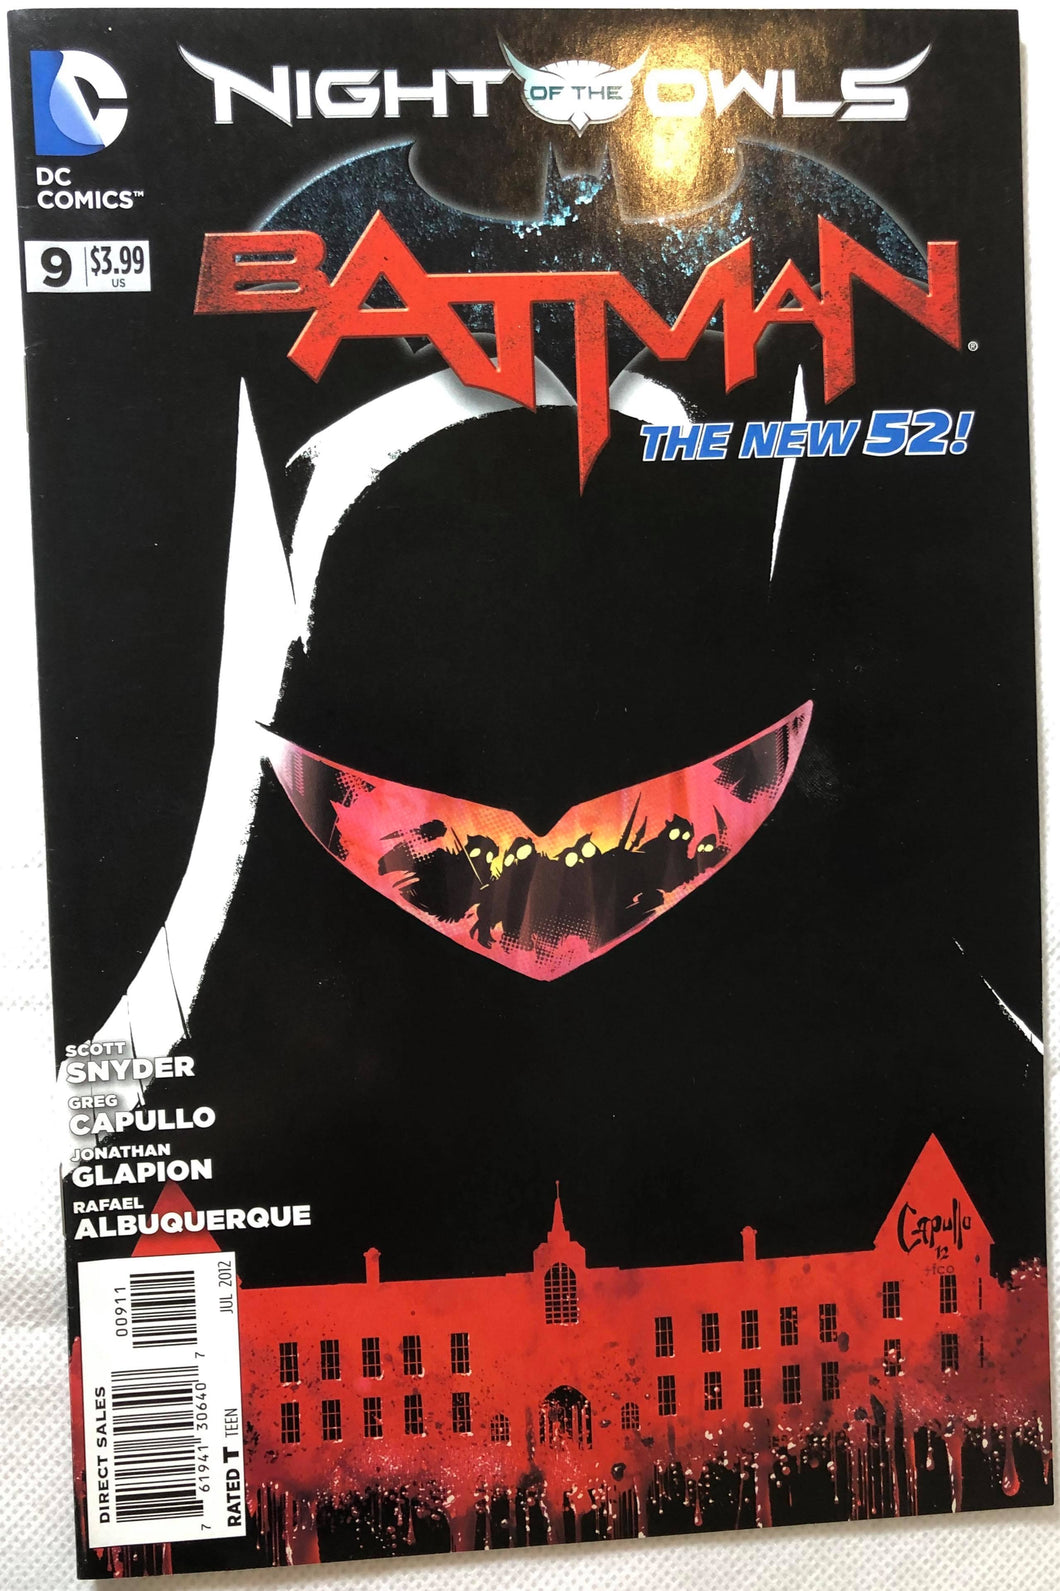 Batman #9 Night of the Owls The New 52! - Demize Collectibles LTD